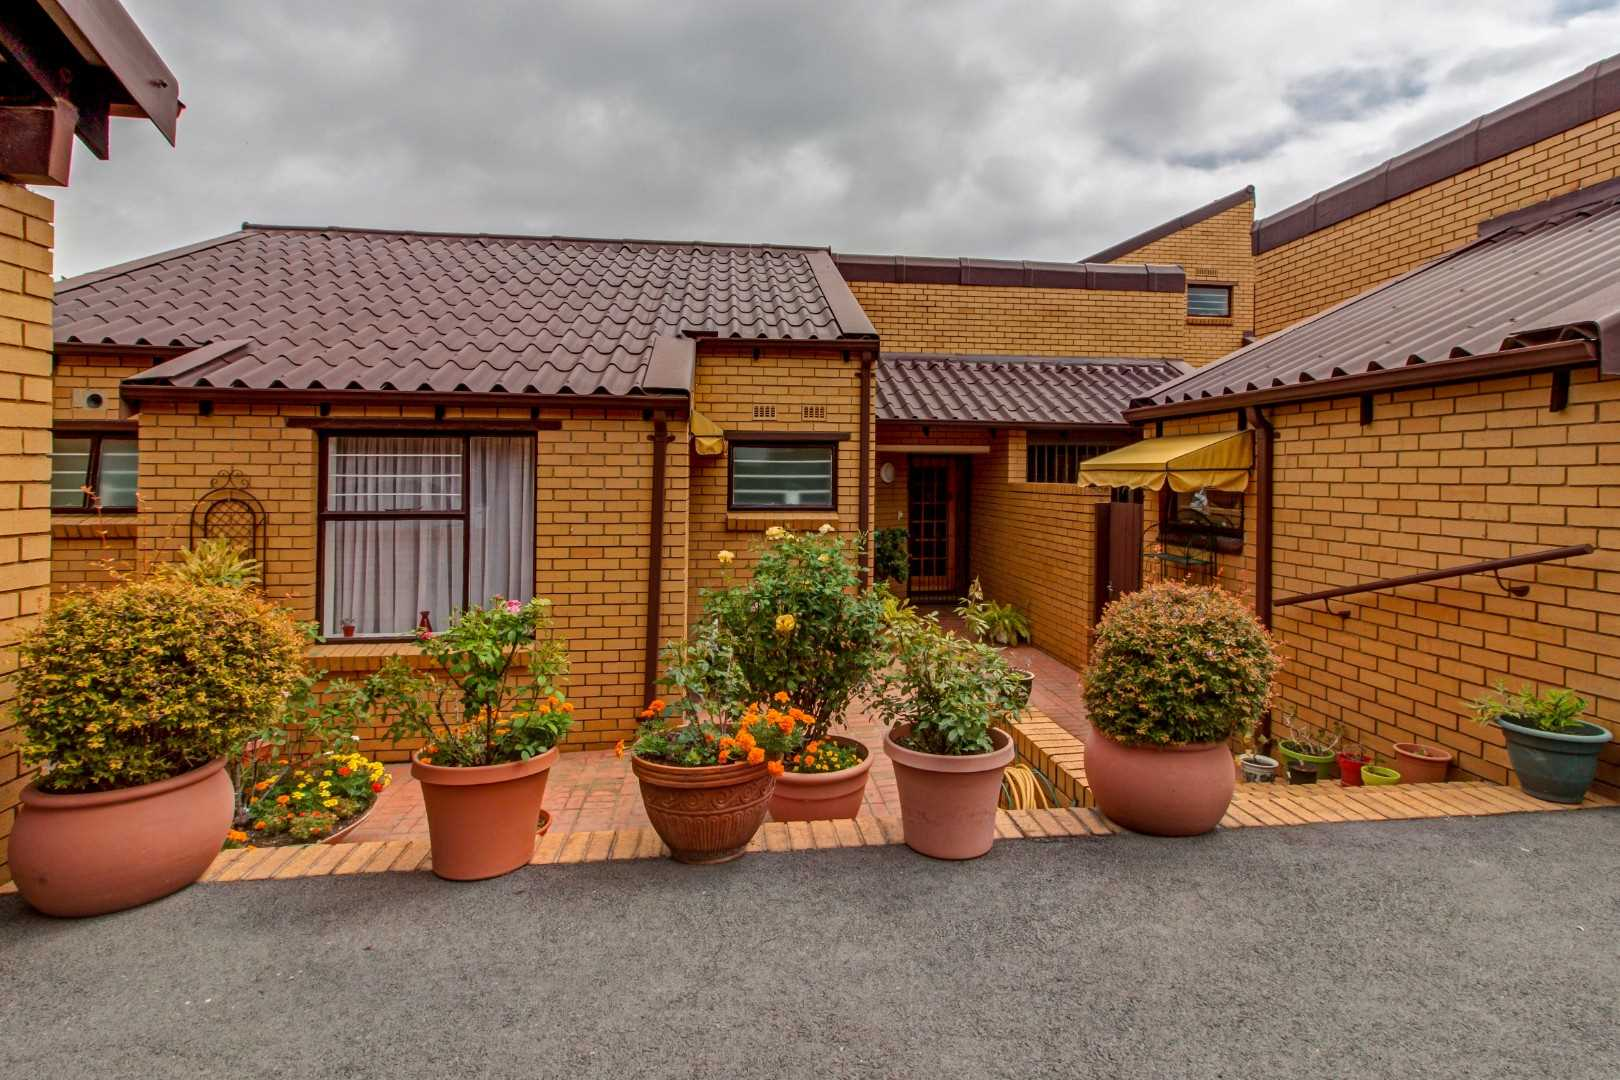 Over 50? Looking for a secure place to reside?